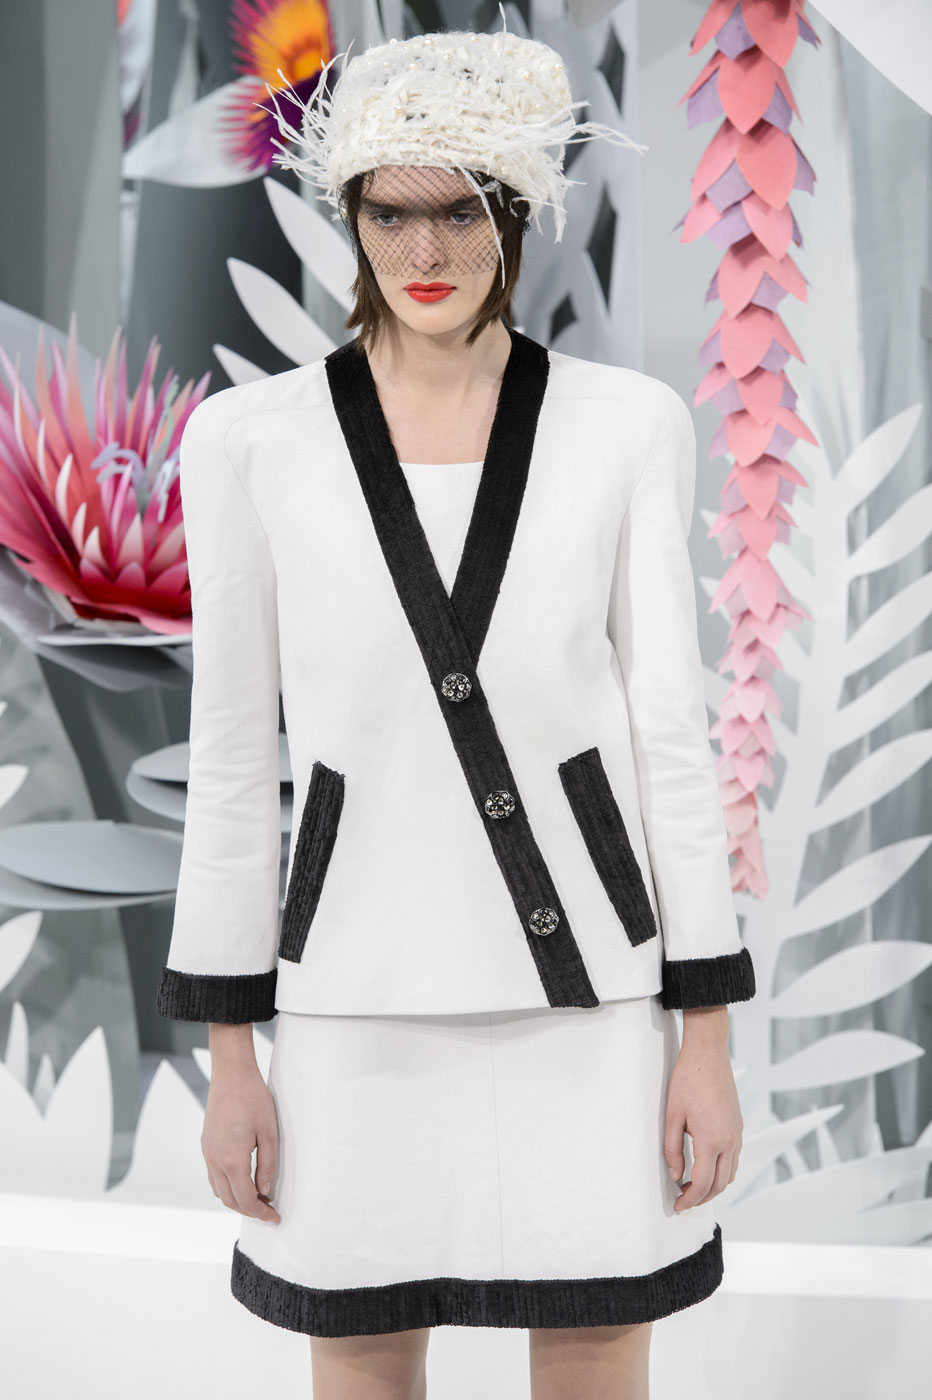 Chanel-fashion-runway-show-haute-couture-paris-spring-summer-2015-the-impression-033